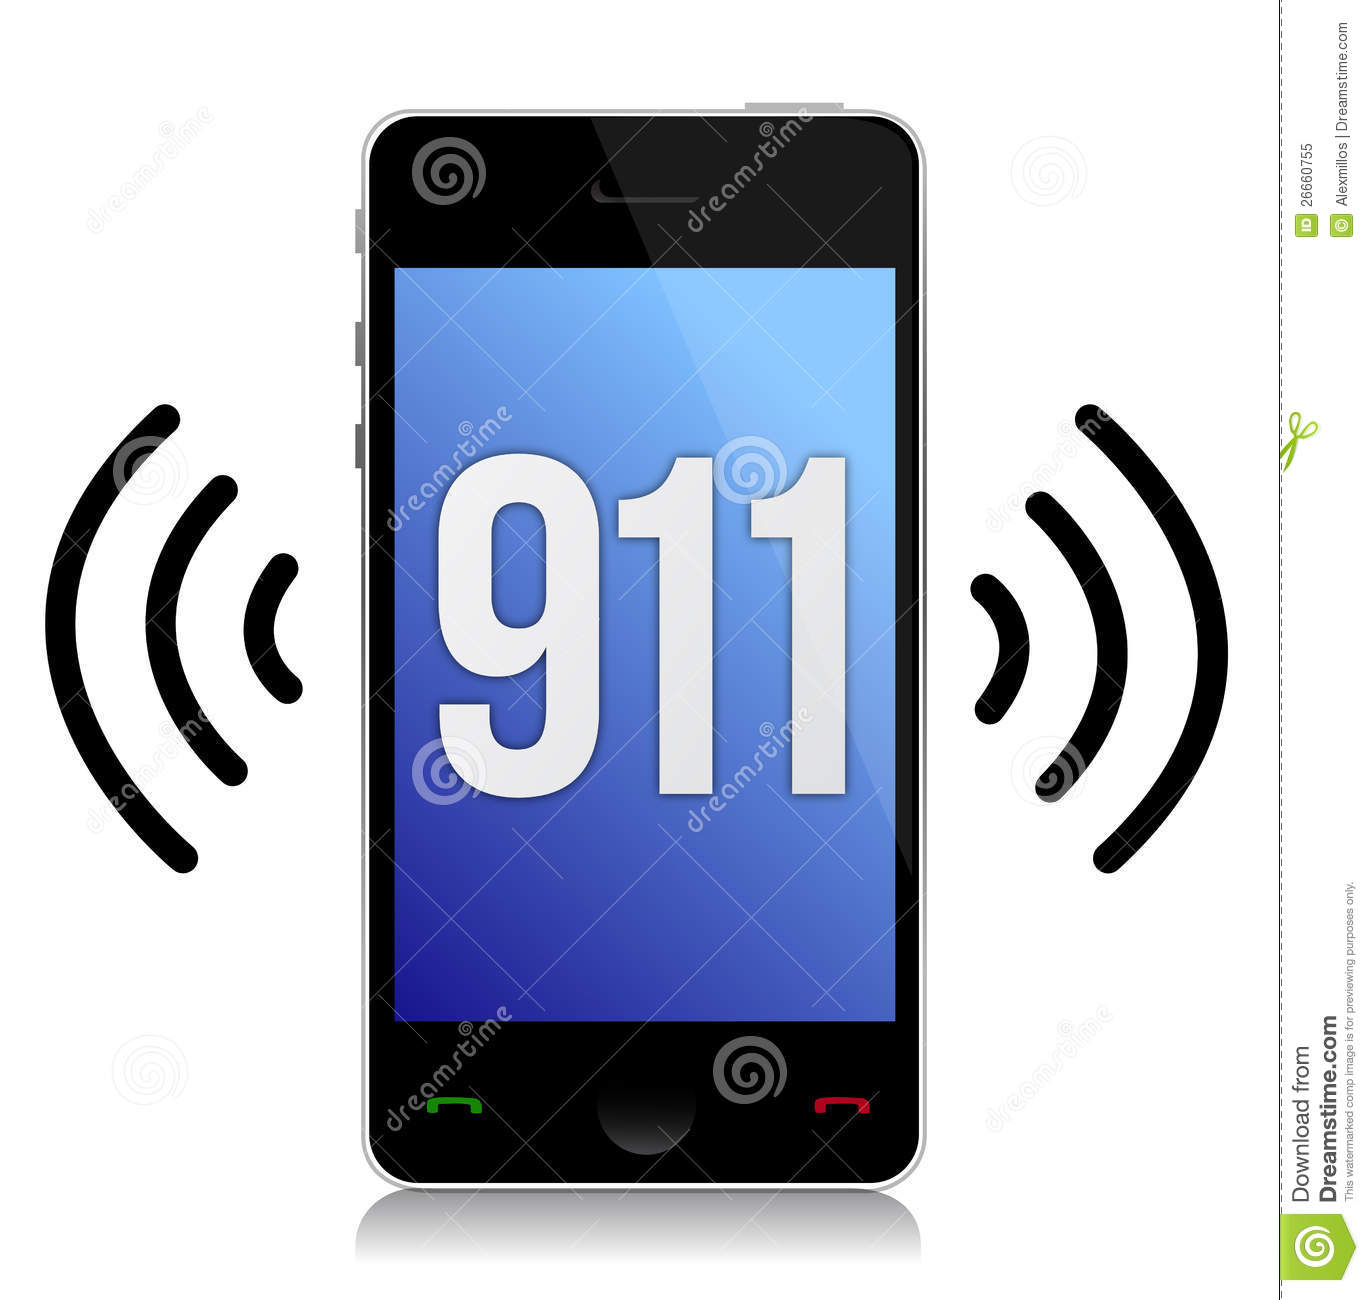 Emergency Number 911 Call Royalty Free Stock Photo